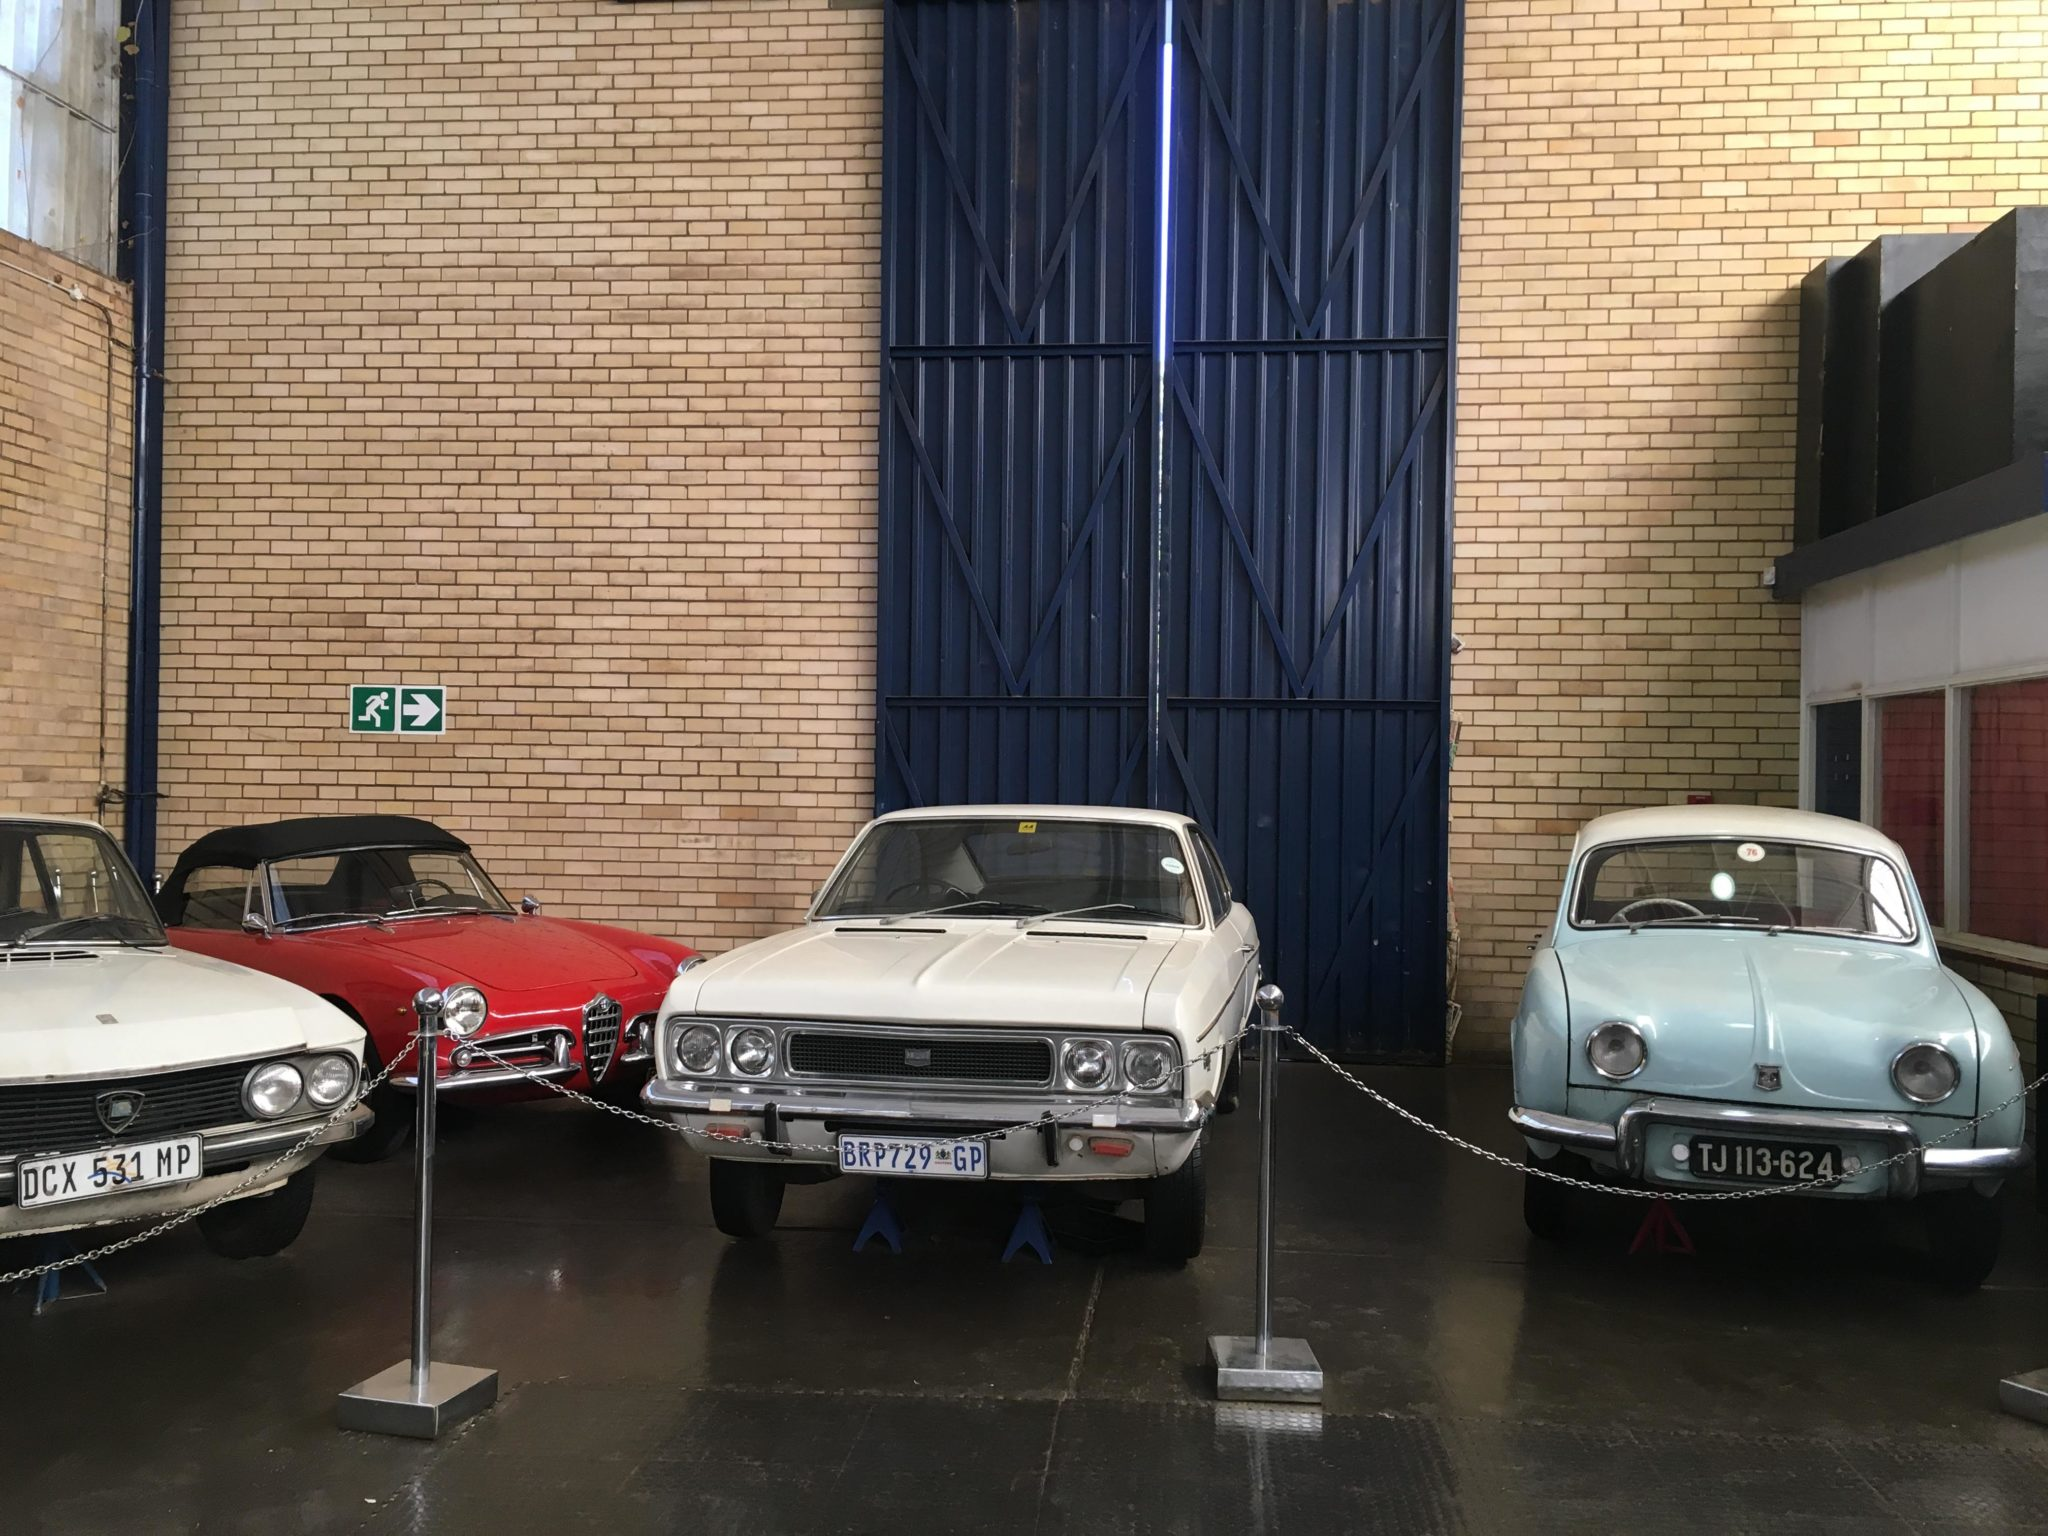 James Hall Transport Museum - More Classic Cars